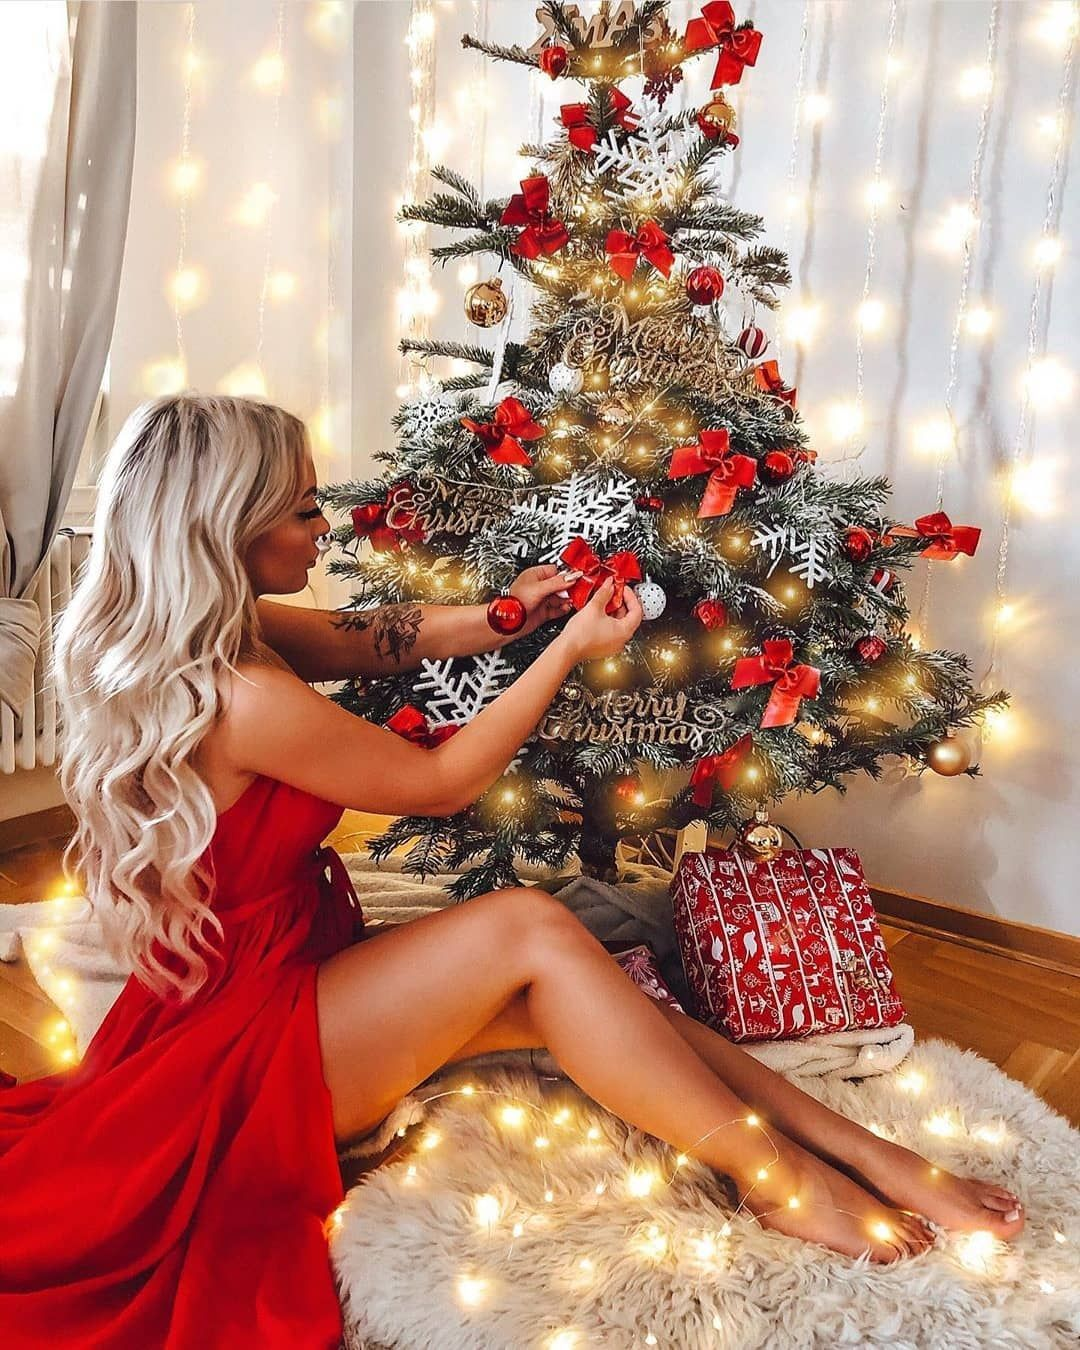 New Style Christmas Lights 2021 8 Things To Do In The Winter Holidays El Style In 2021 Christmas Photoshoot Christmas Tree Pictures Christmas Girl